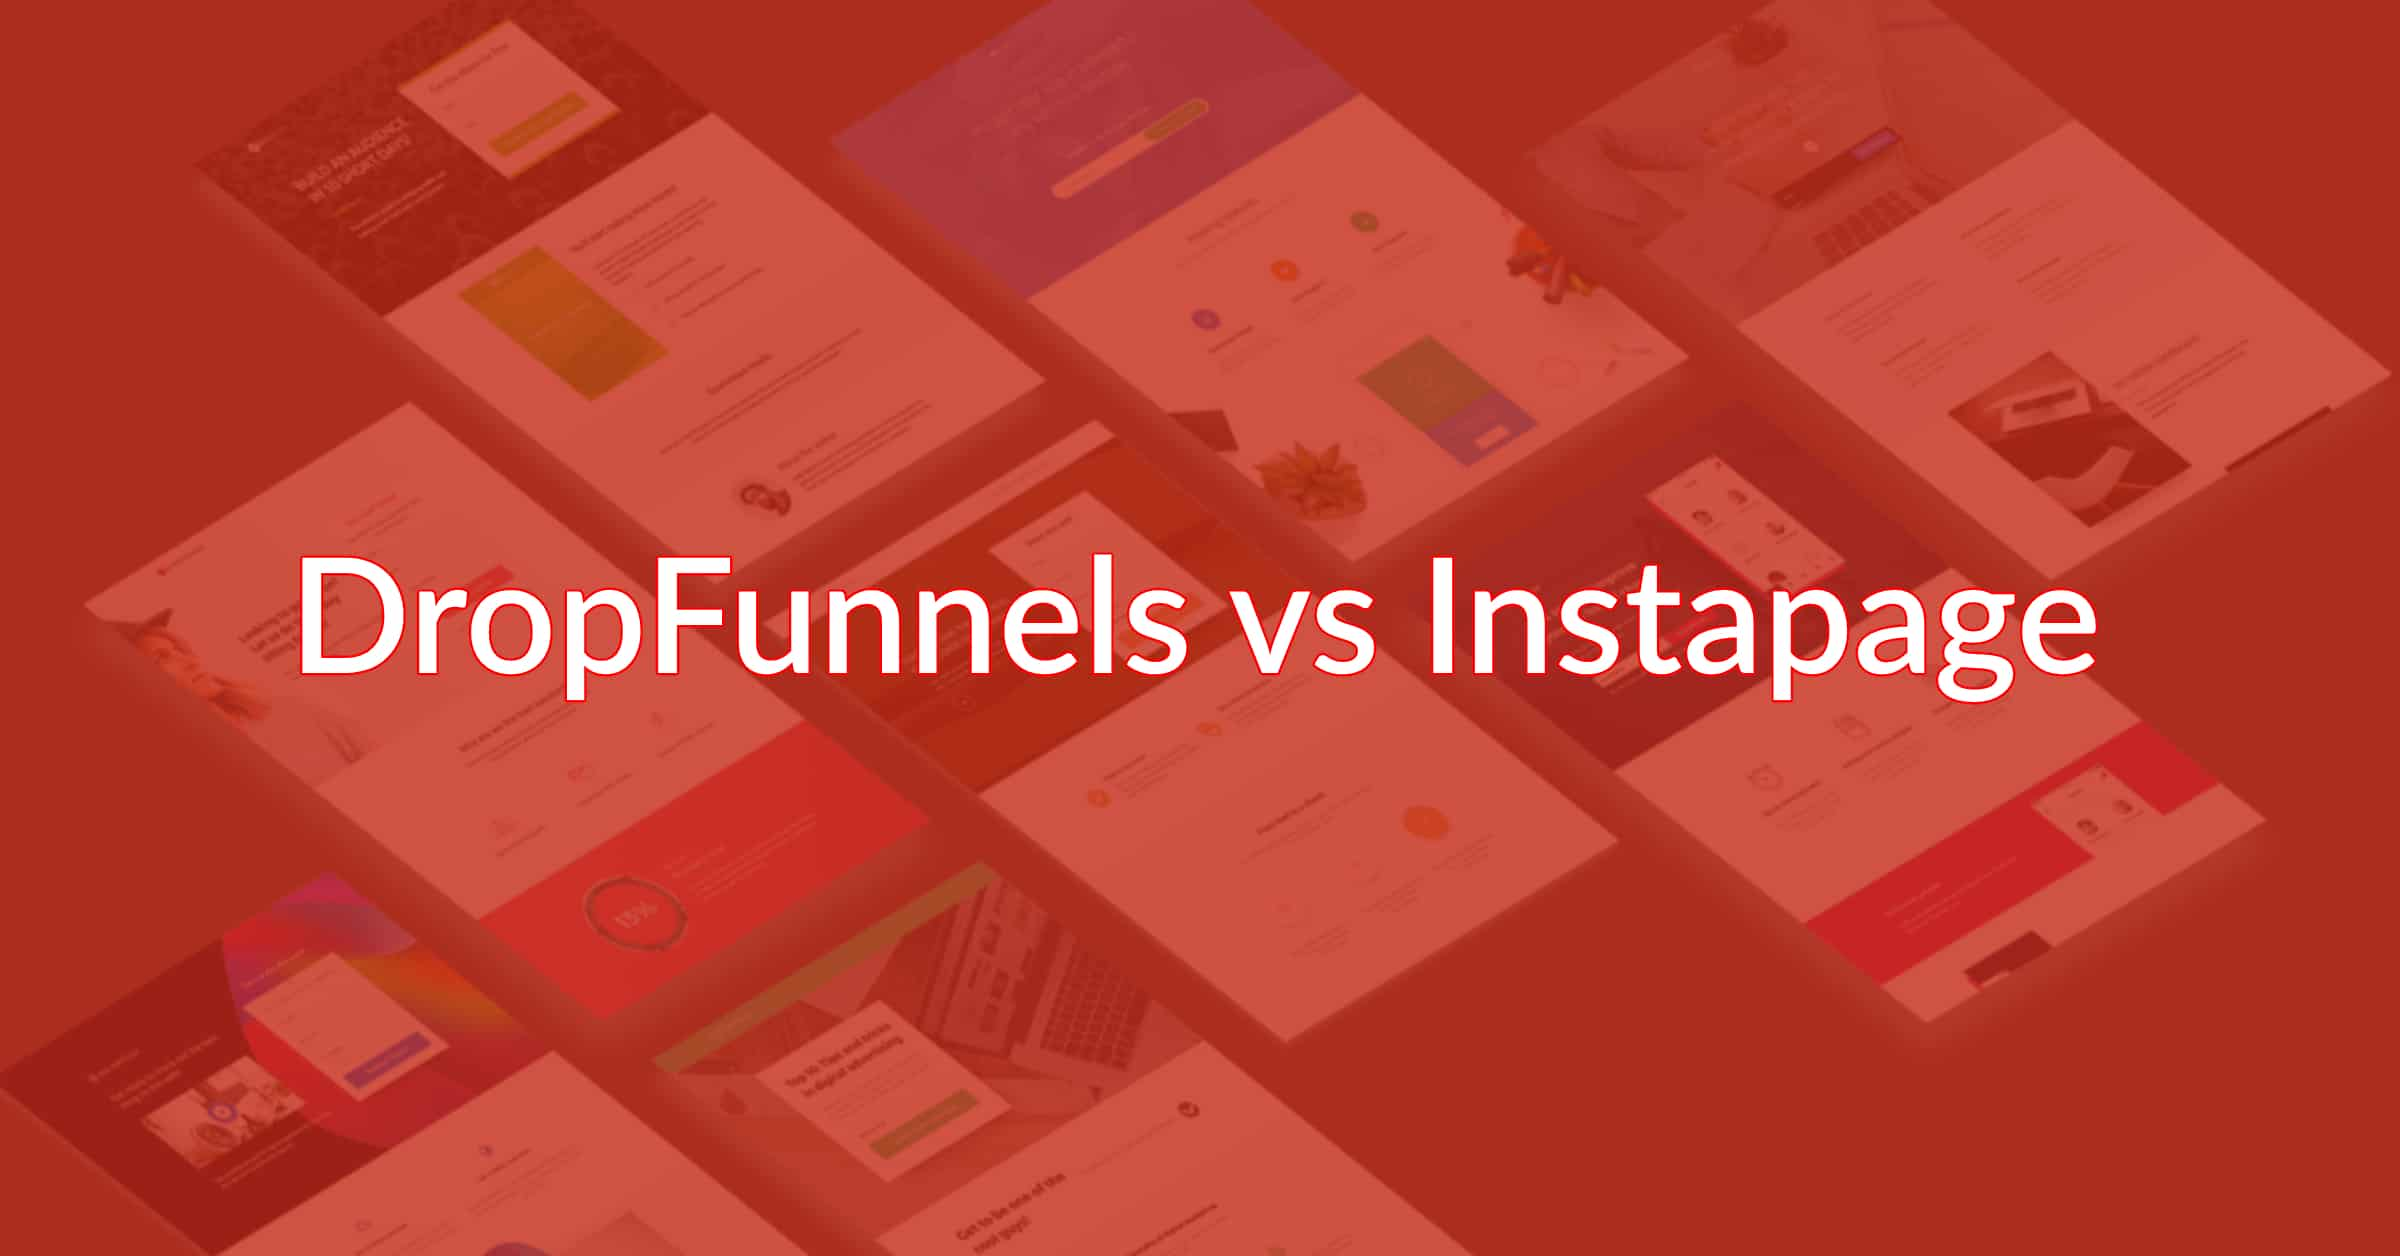 DropFunnels vs InstaPage: Can You Increase Sales With One?